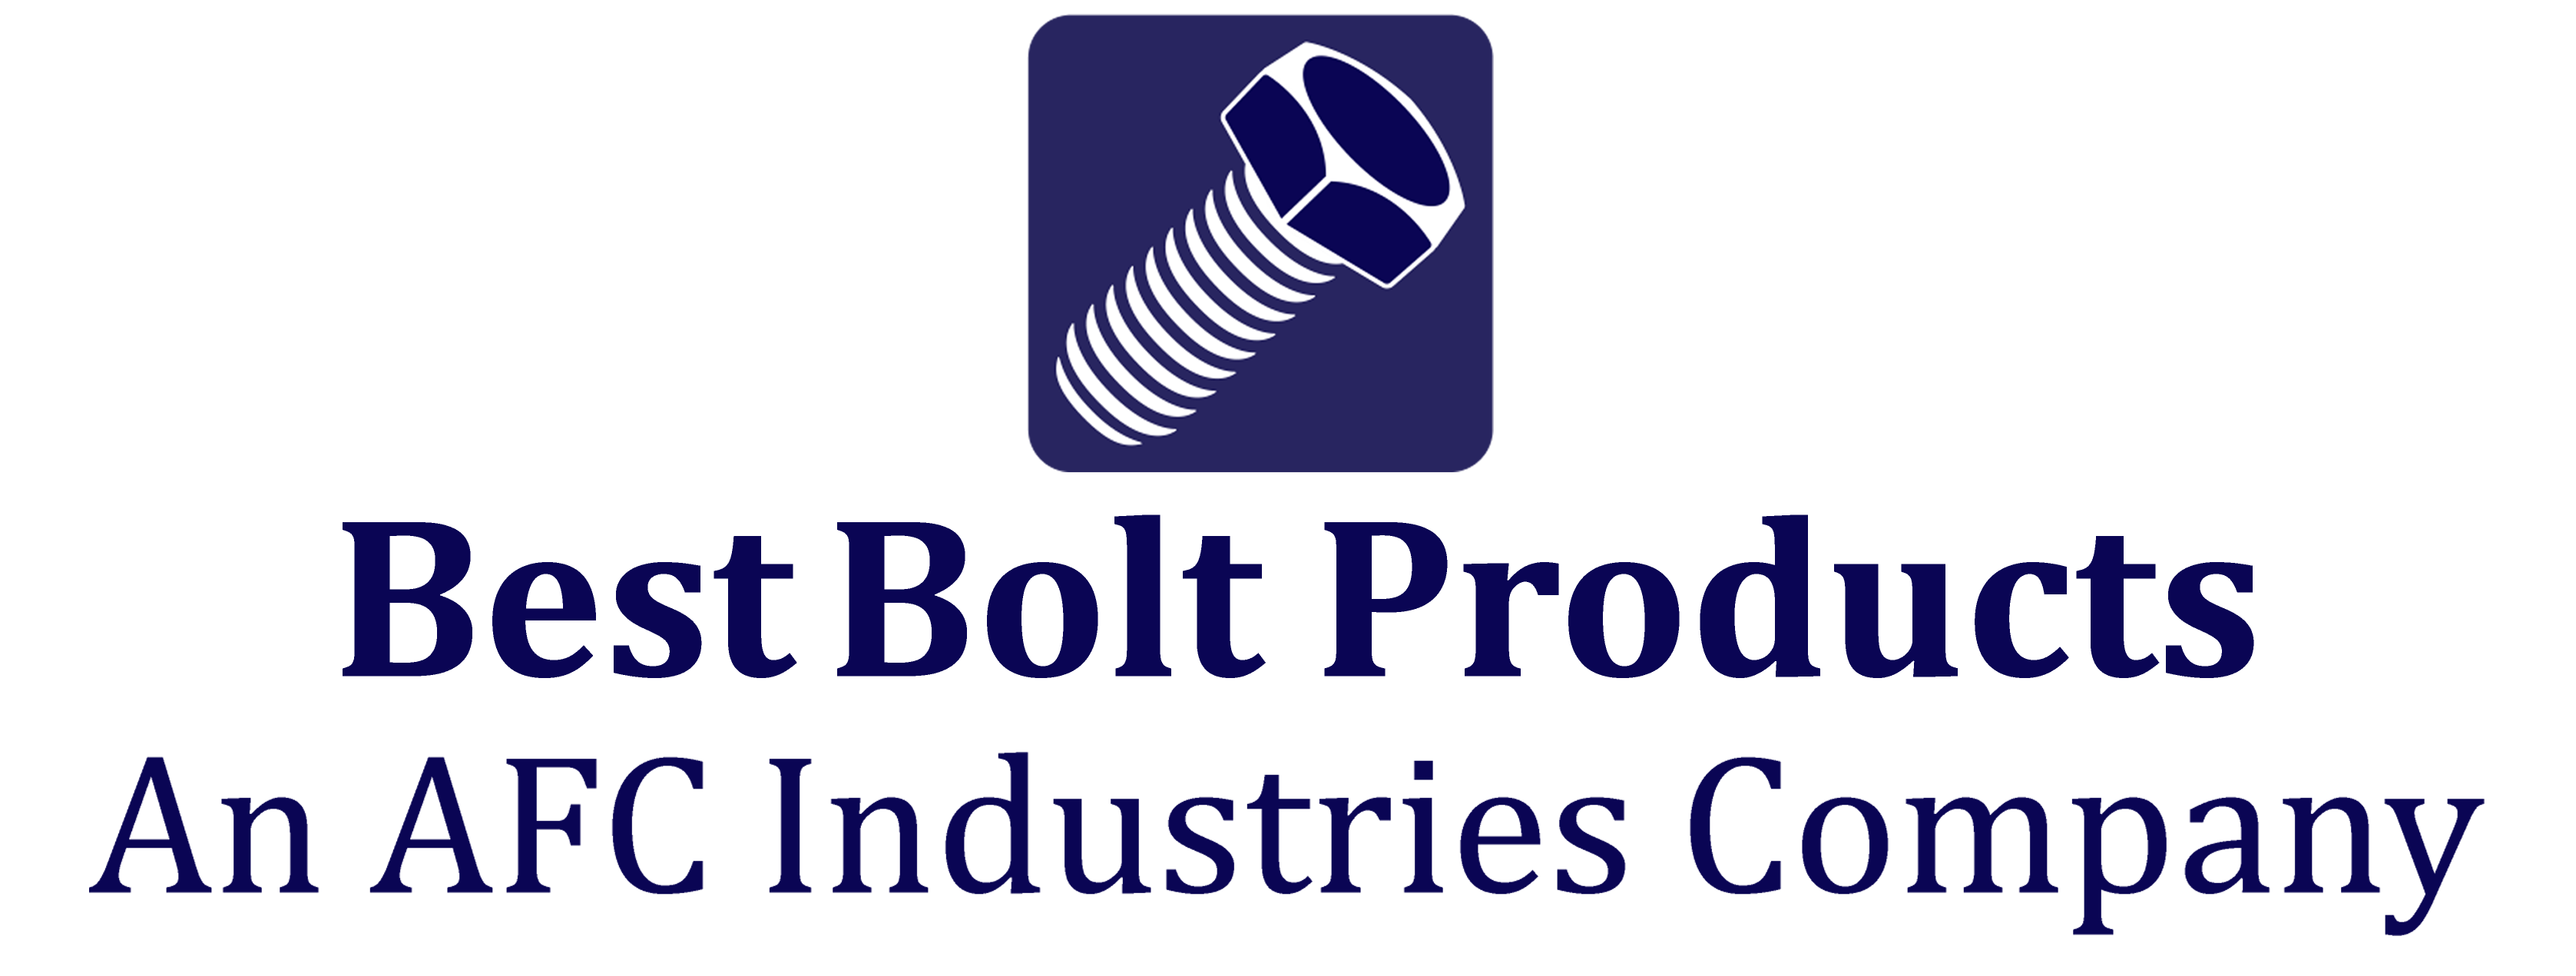 Best Bolt Products - an AFC Industries Company